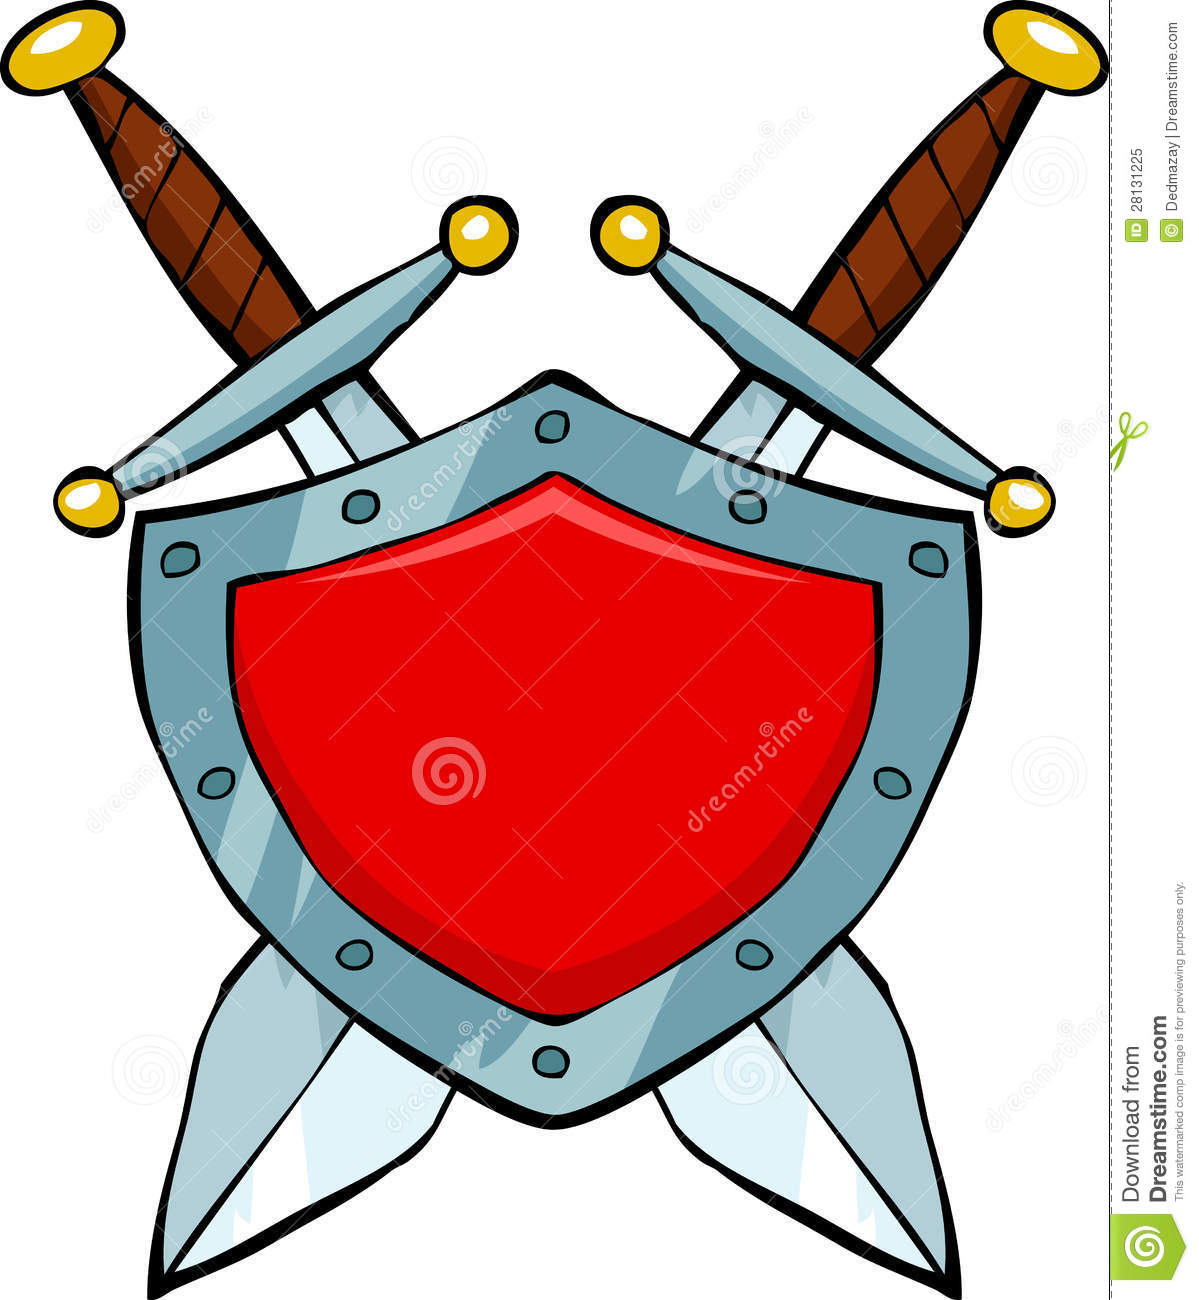 Shield Images Clipart.